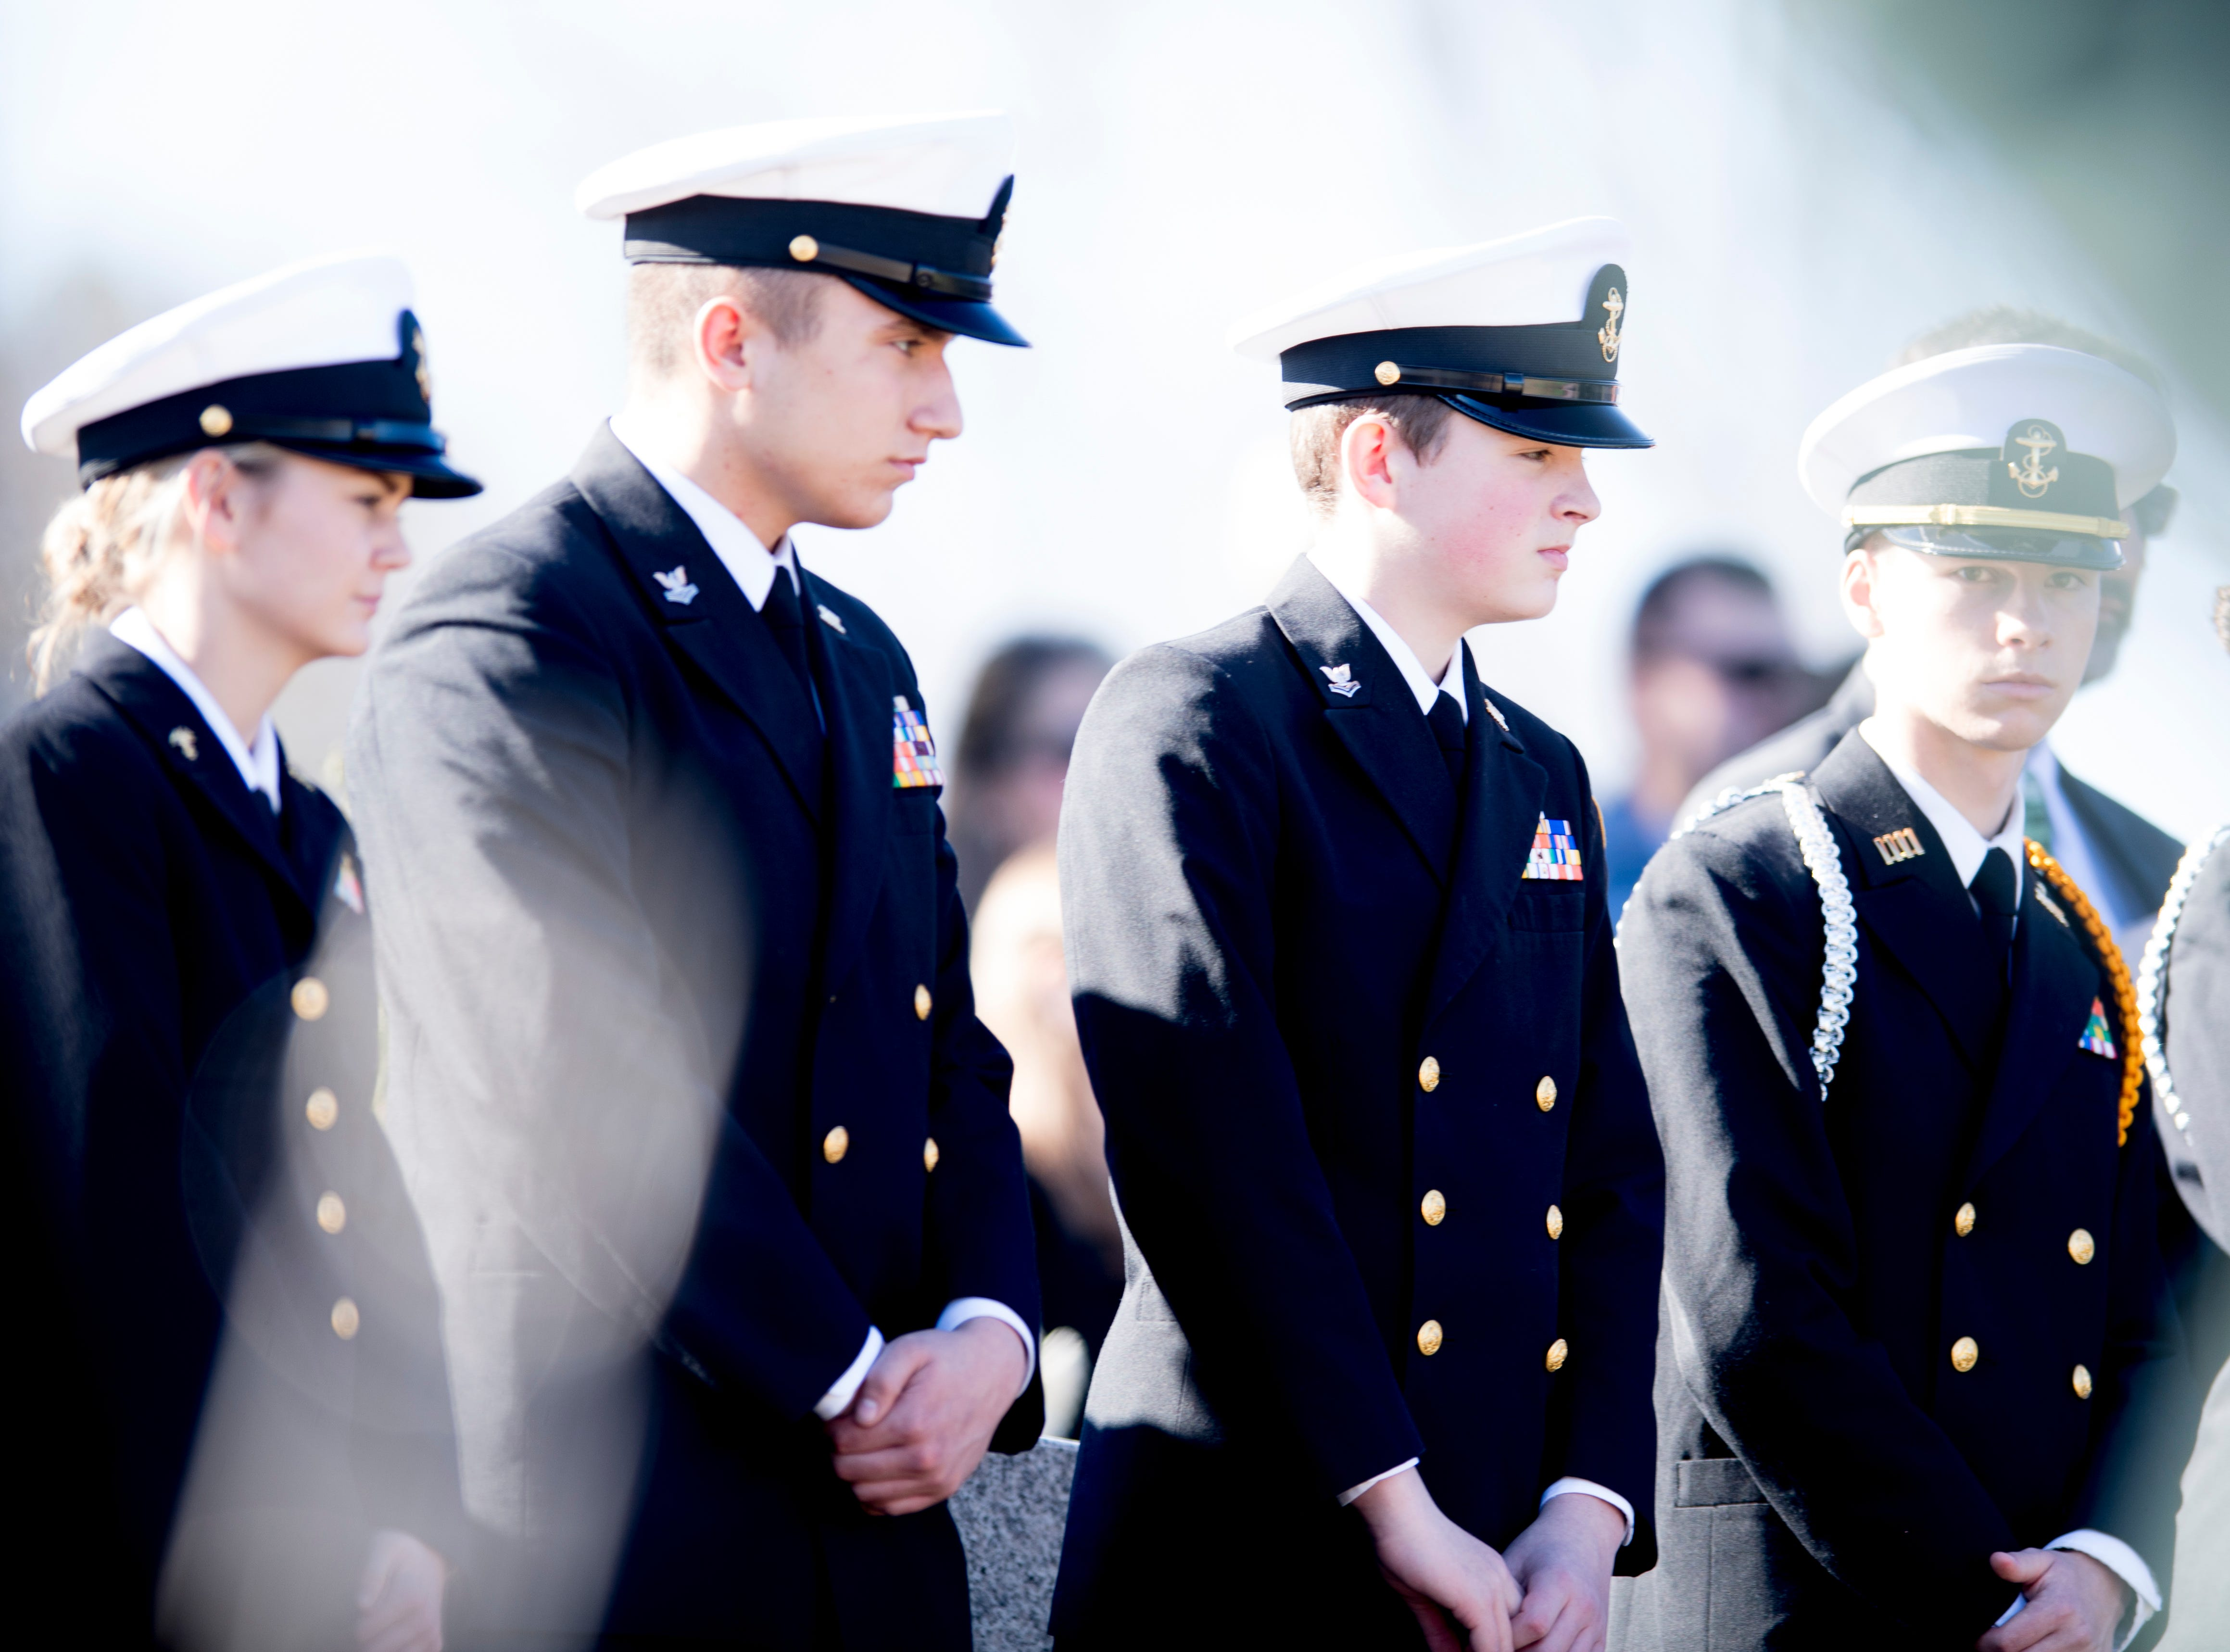 Navy cadets attend a graveside service for Rosemary Mariner, the US Navy's first female fighter pilot, at New Loyston Cemetery in Maynardville, Tennessee on Saturday, February 2, 2019. Mariner died January 24th of cancer.